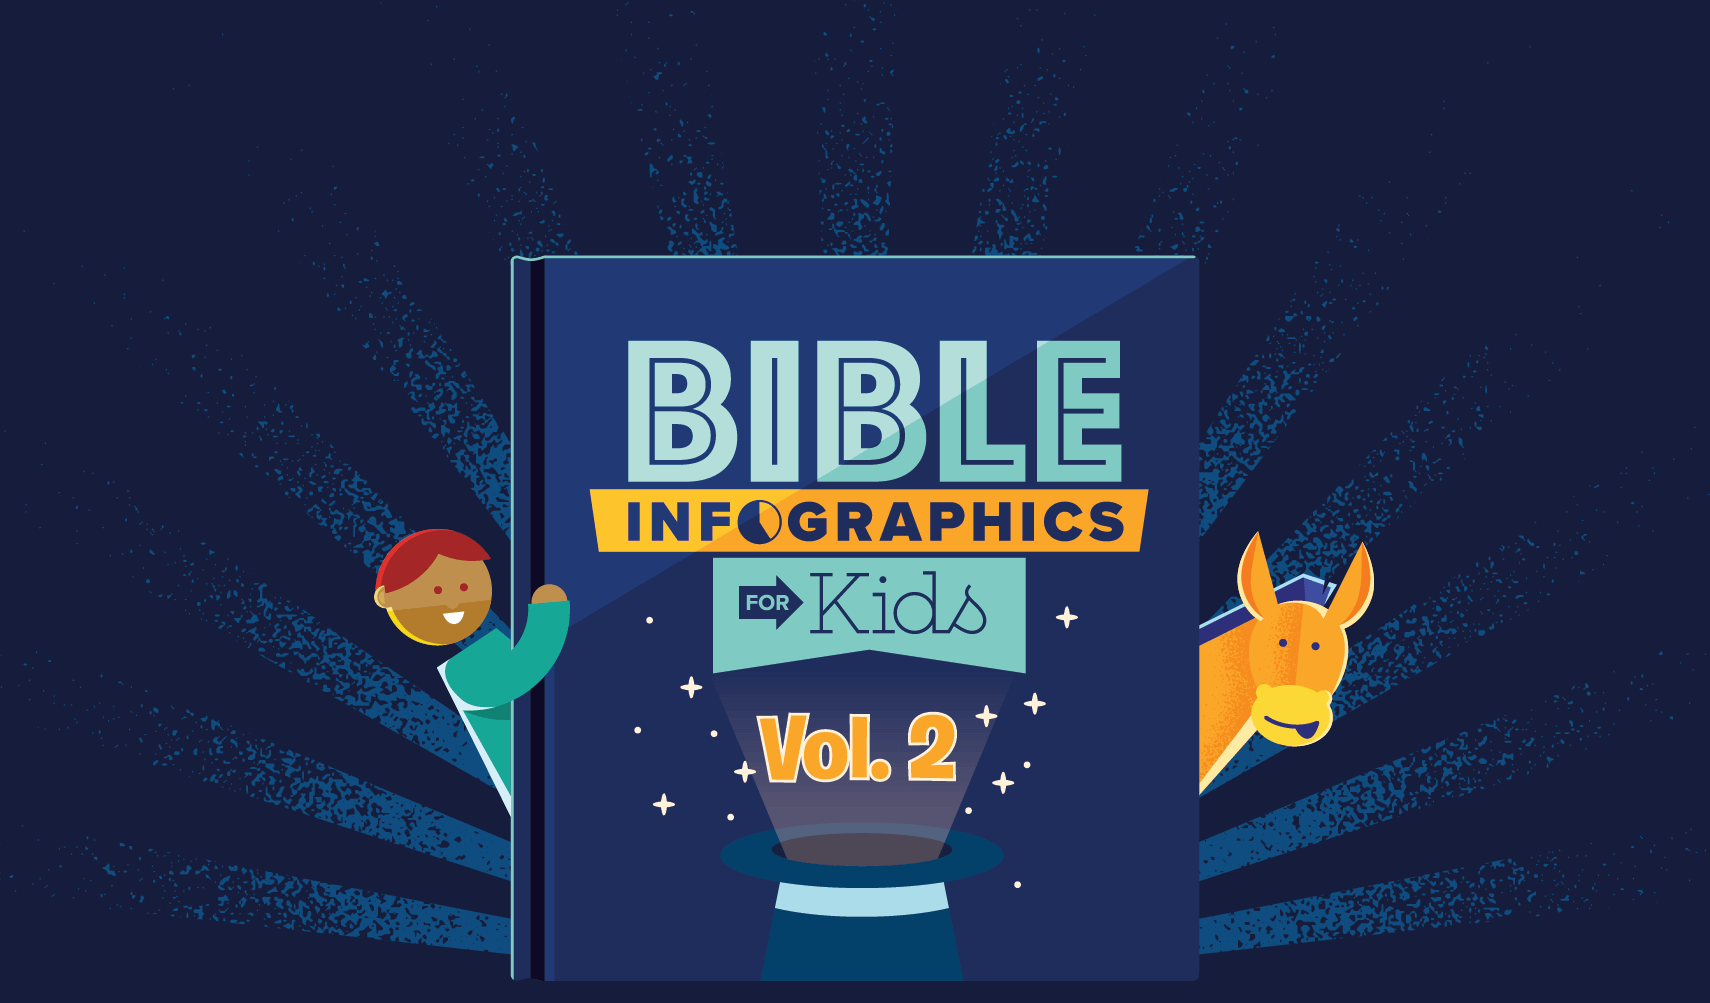 Bible Infographics Volume 2 Coming Soon